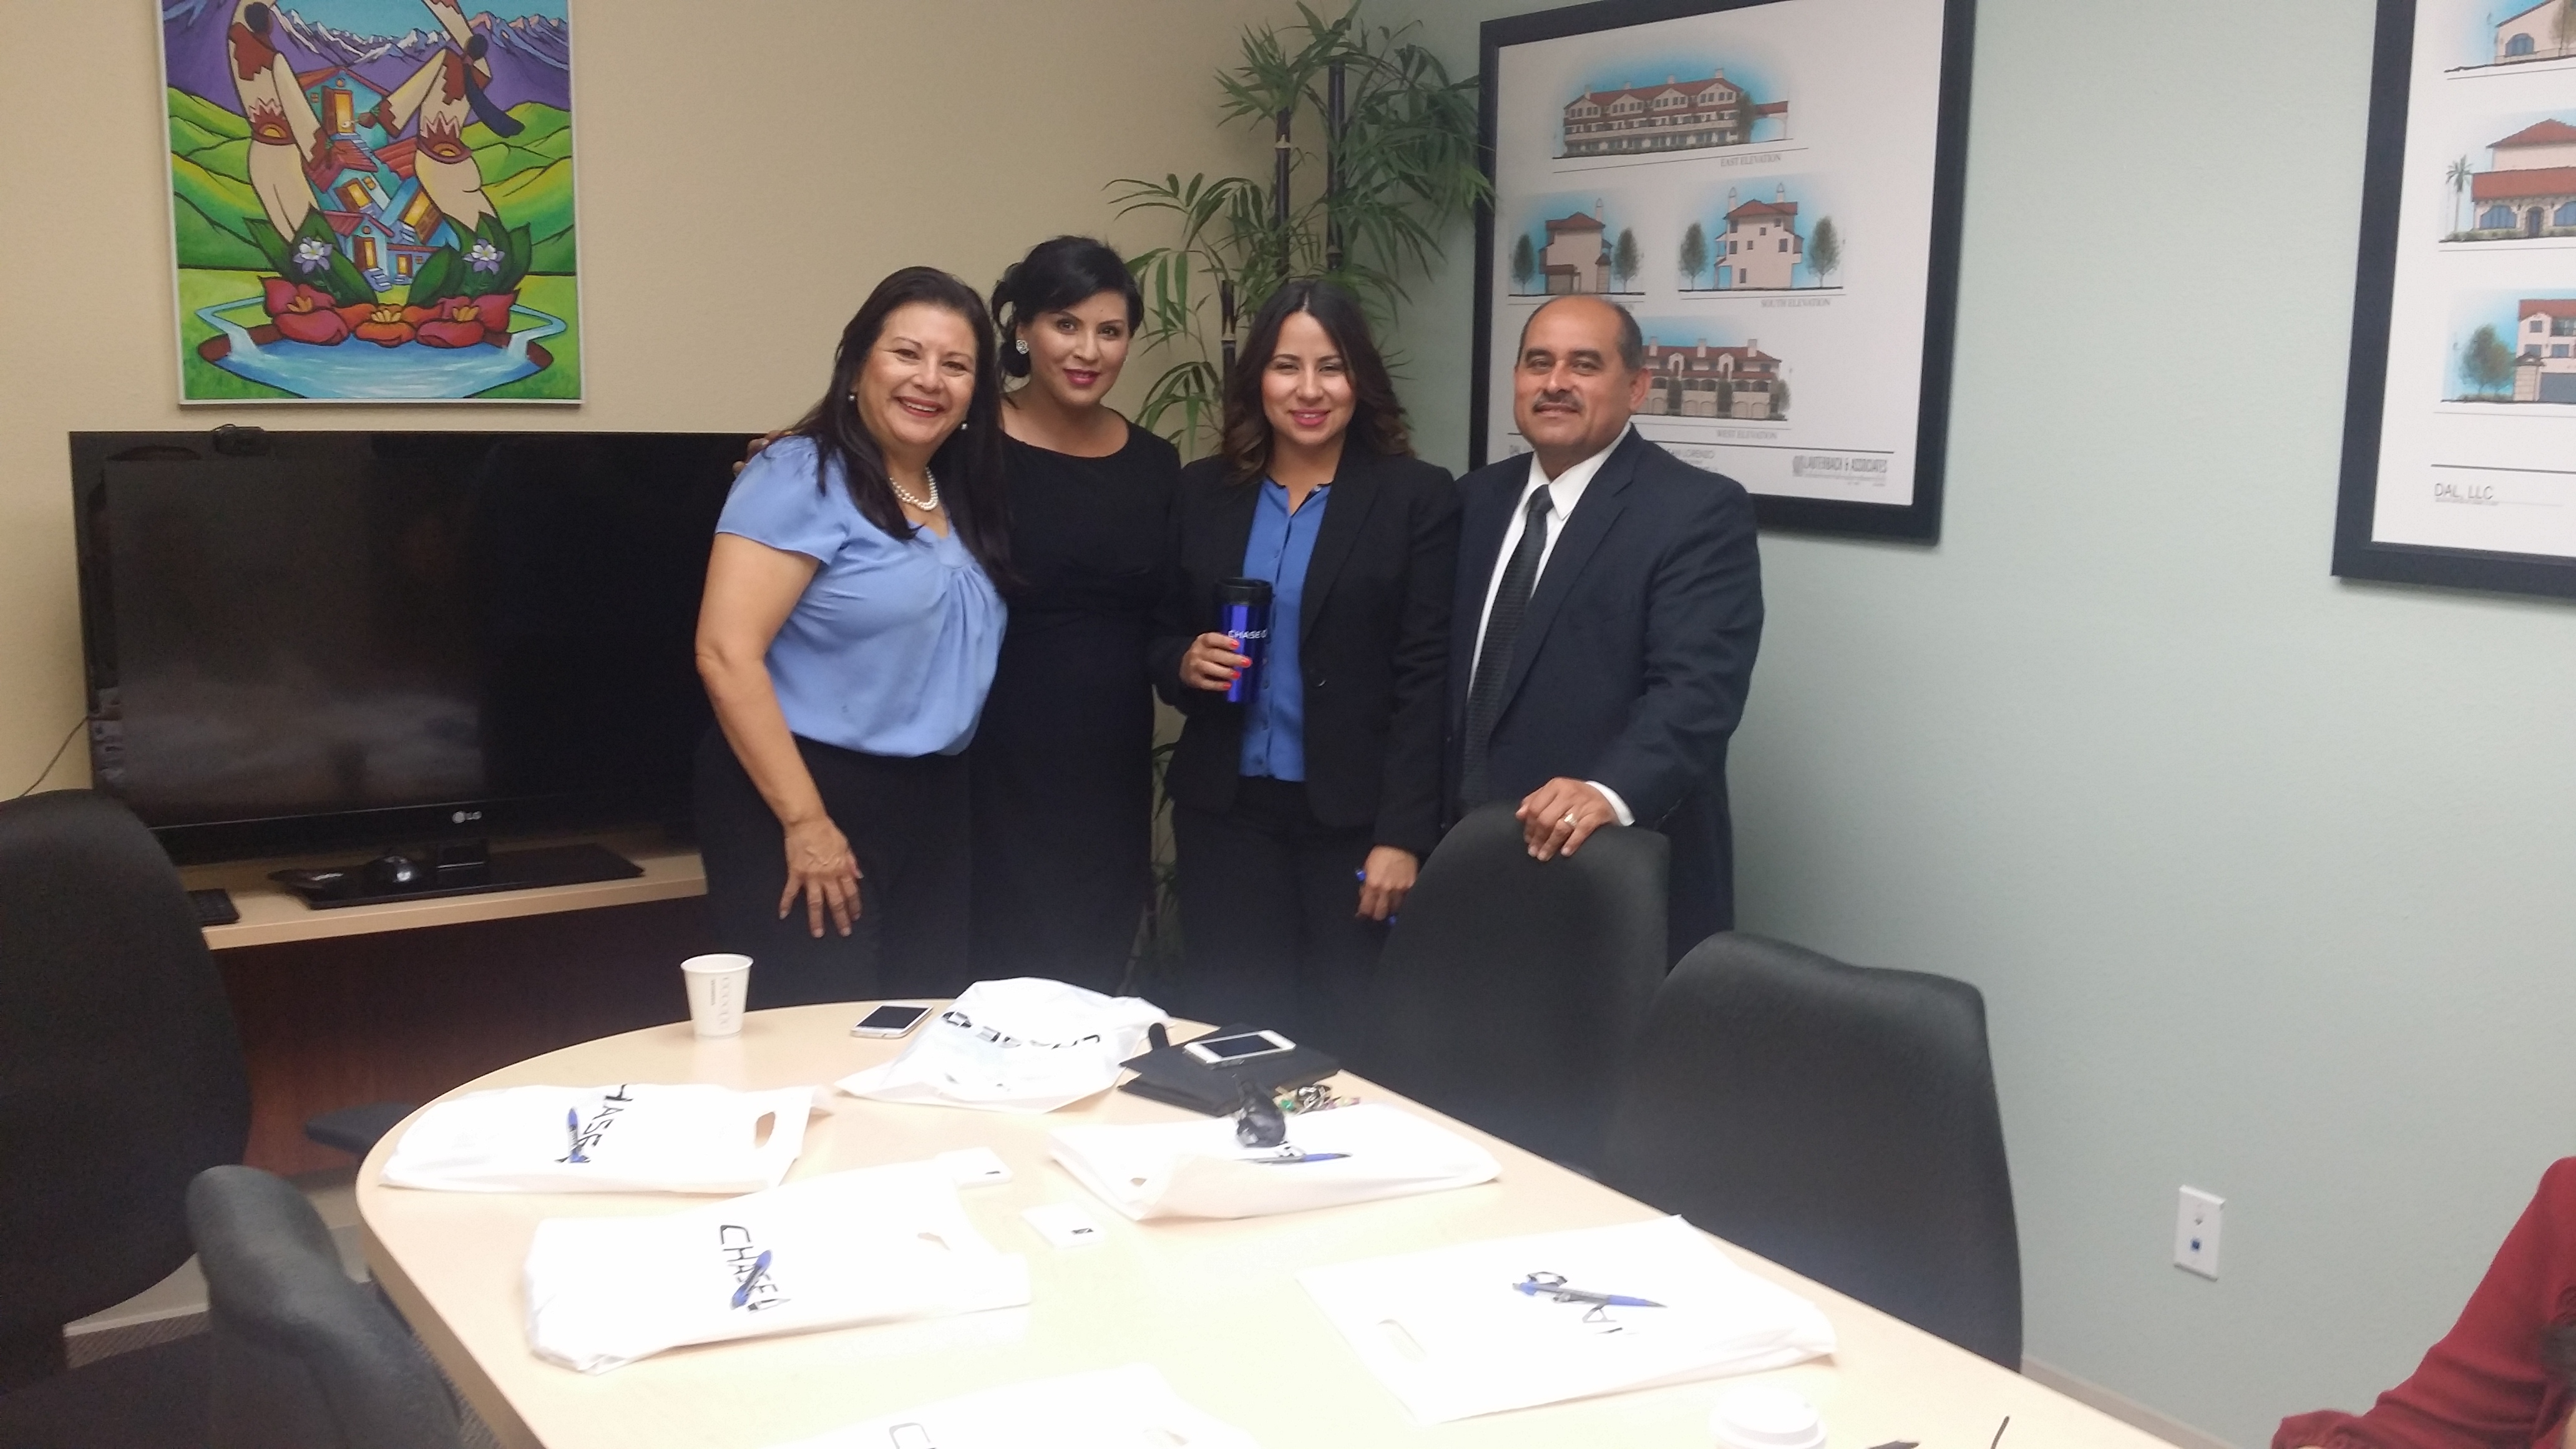 chase bank and exit realty in oxnard seek partnership to develop chase bank and exit realty in oxnard seek partnership to develop the premium support program for real estate professionals